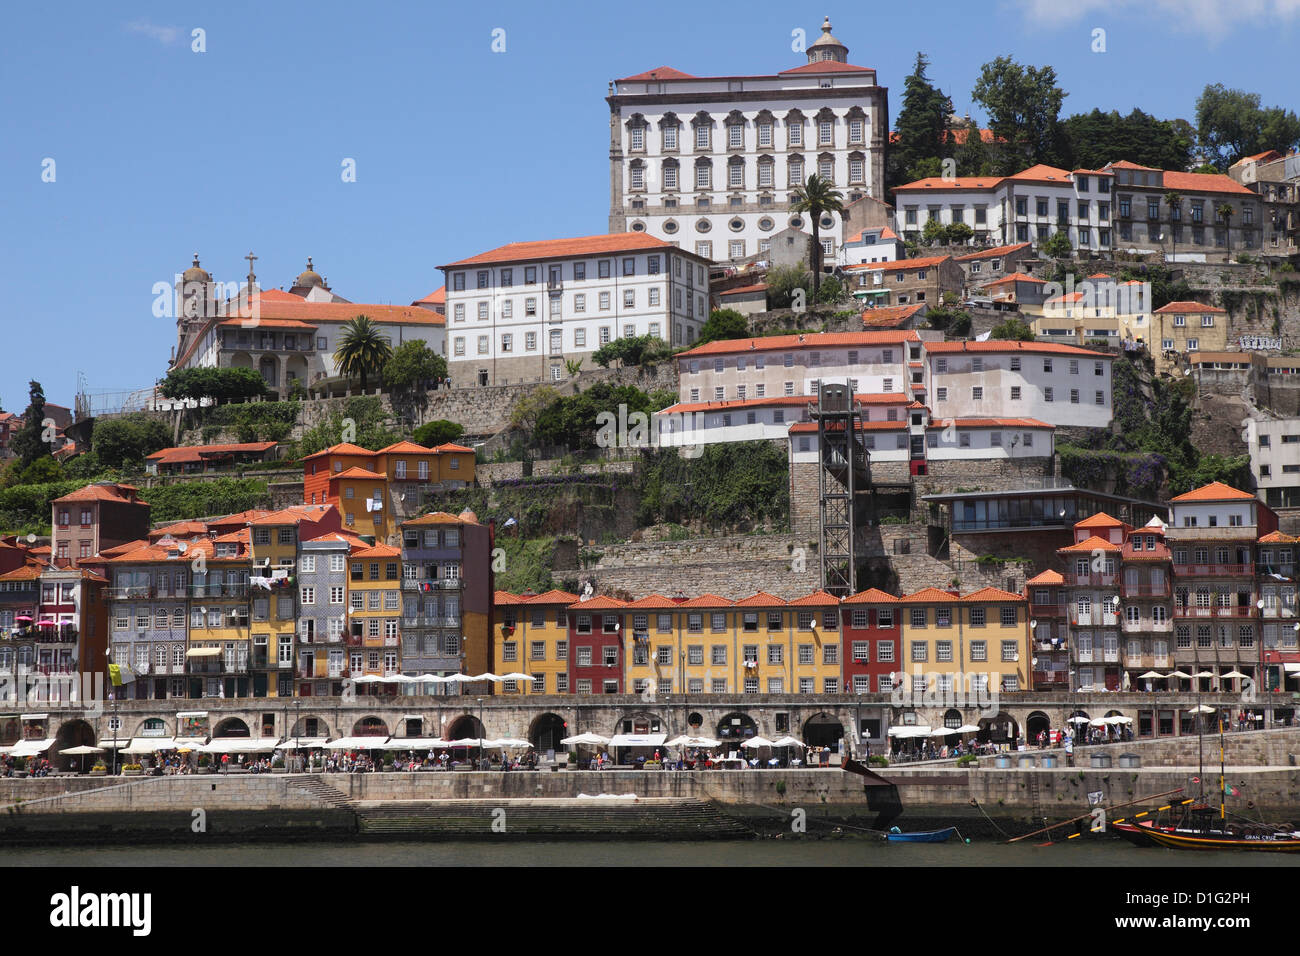 Buildings overlook the River Douro on the Ribeira District, UNESCO World Heritage Site, Porto, Douro, Portugal, - Stock Image